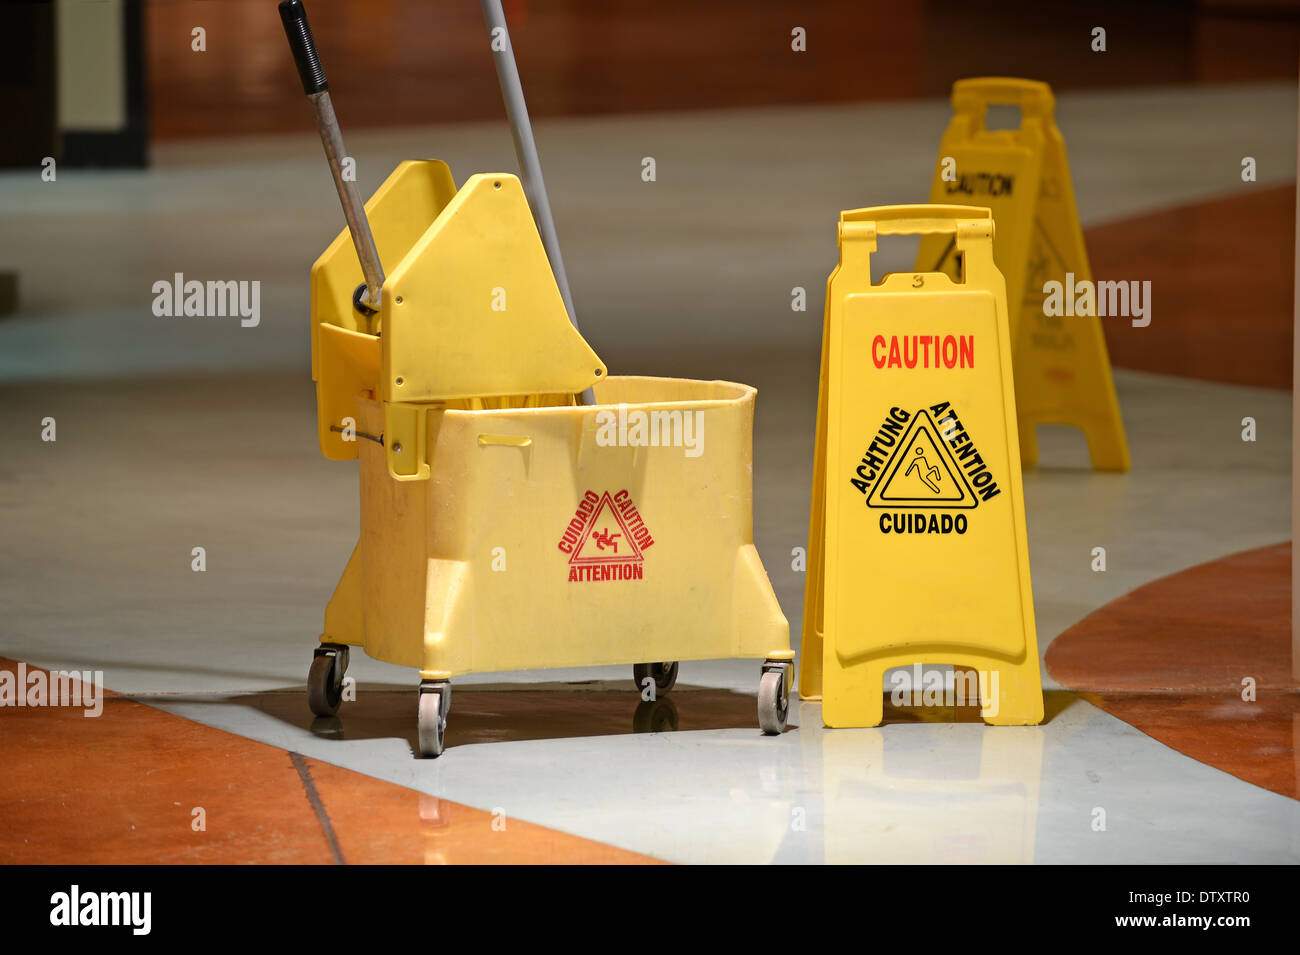 Janitorial mop and caution sign on hallway - Stock Image